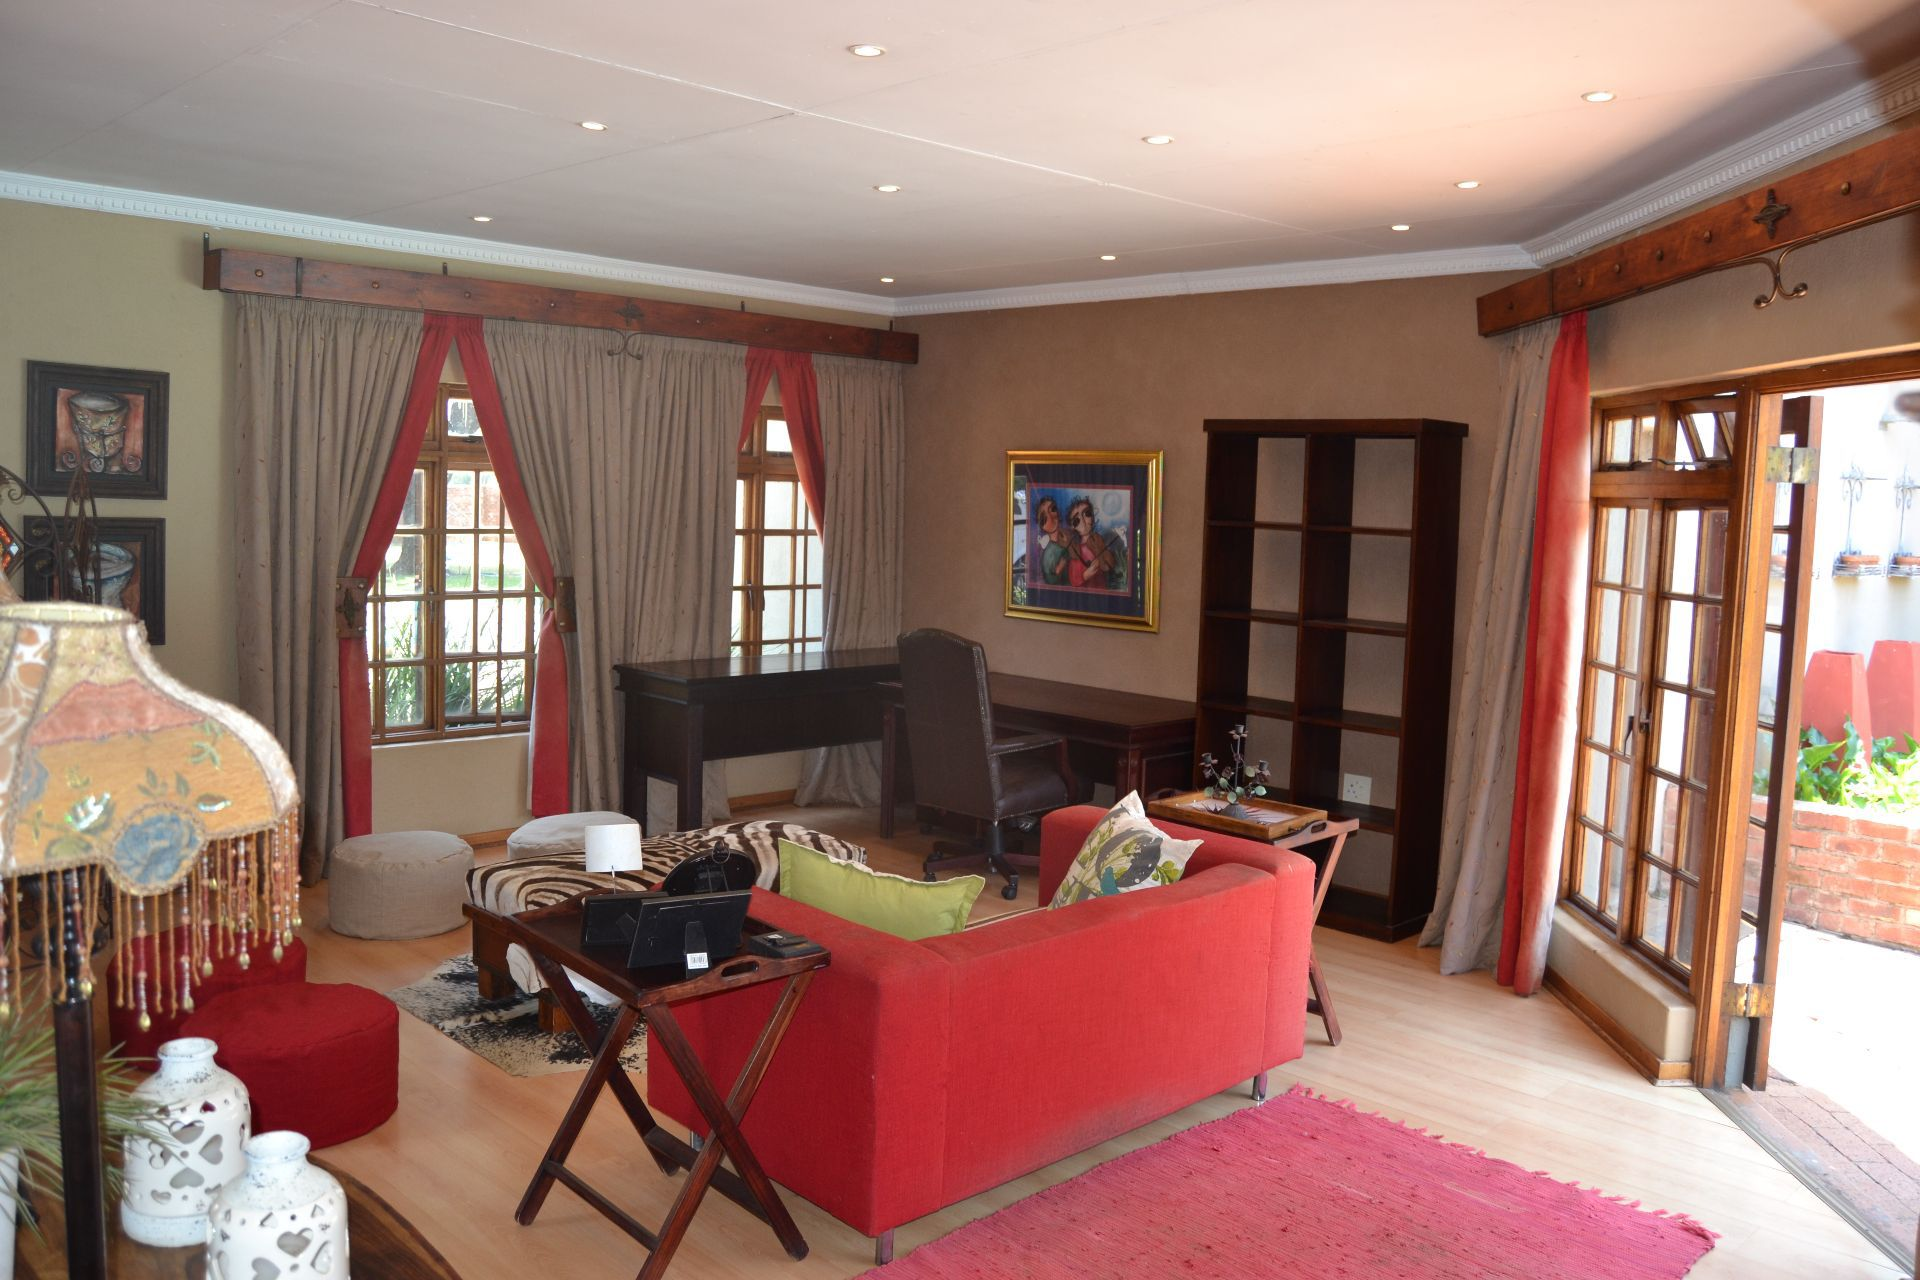 Farms for sale in wilgeboom a h 8 bedroom 13577974 2 1 for S h bedroom gallery